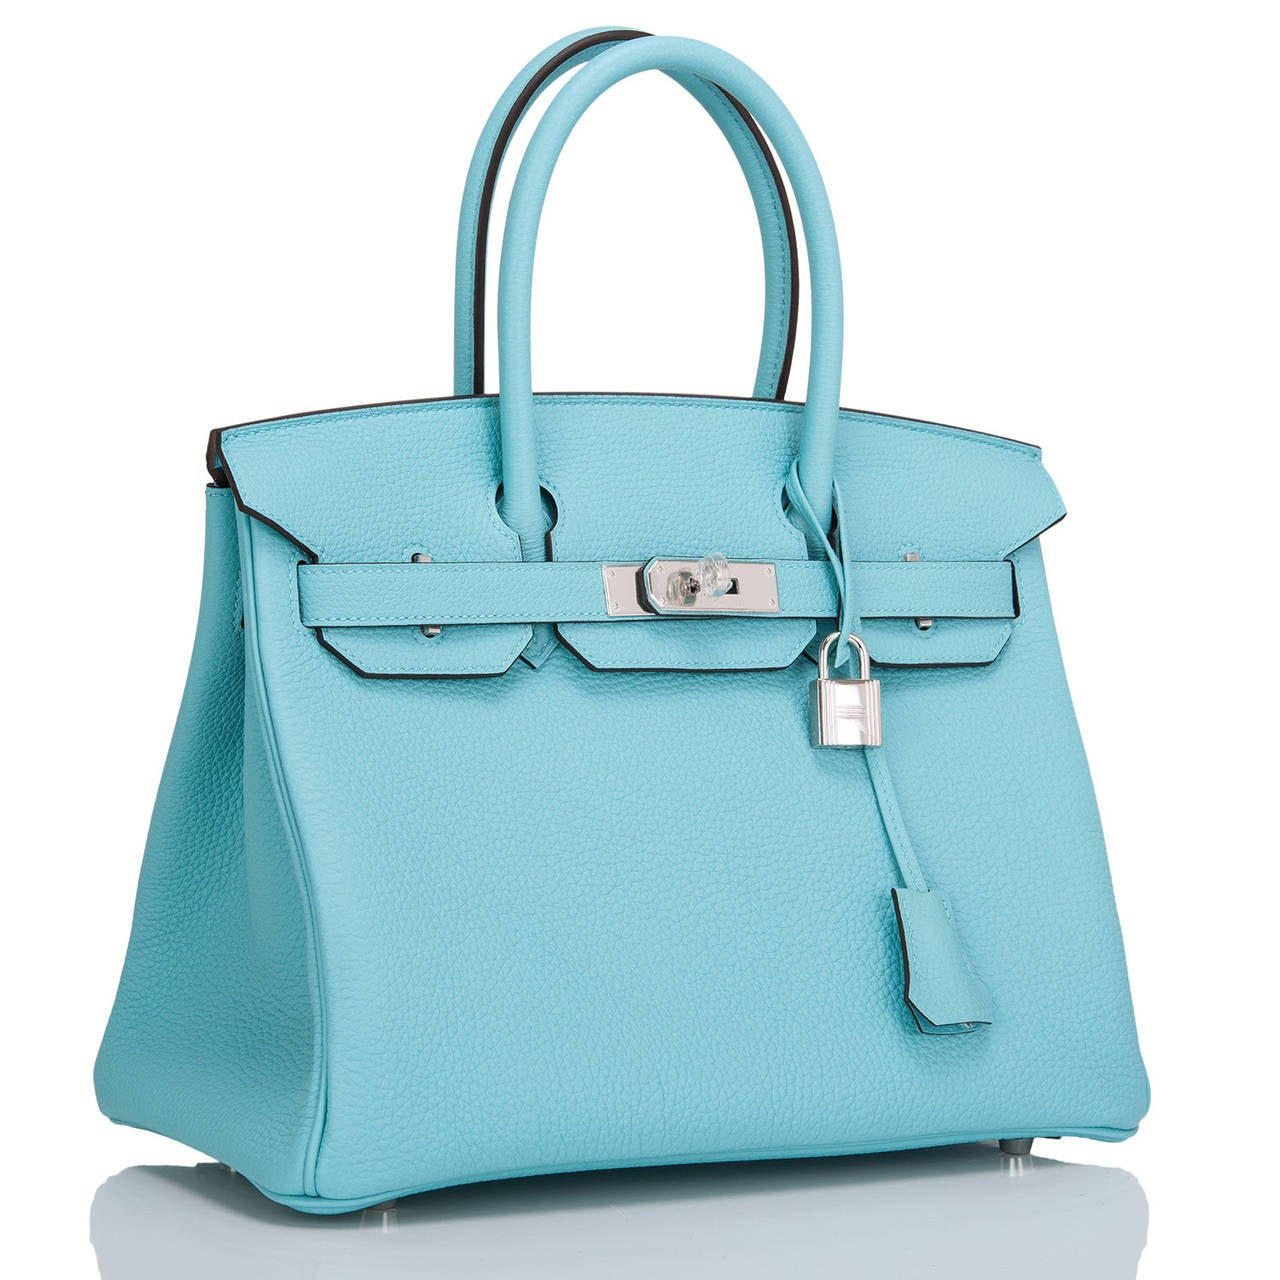 sac hermes birkin - Hermes Blue Atoll Togo Birkin 30cm Palladium Hardware For Sale at ...